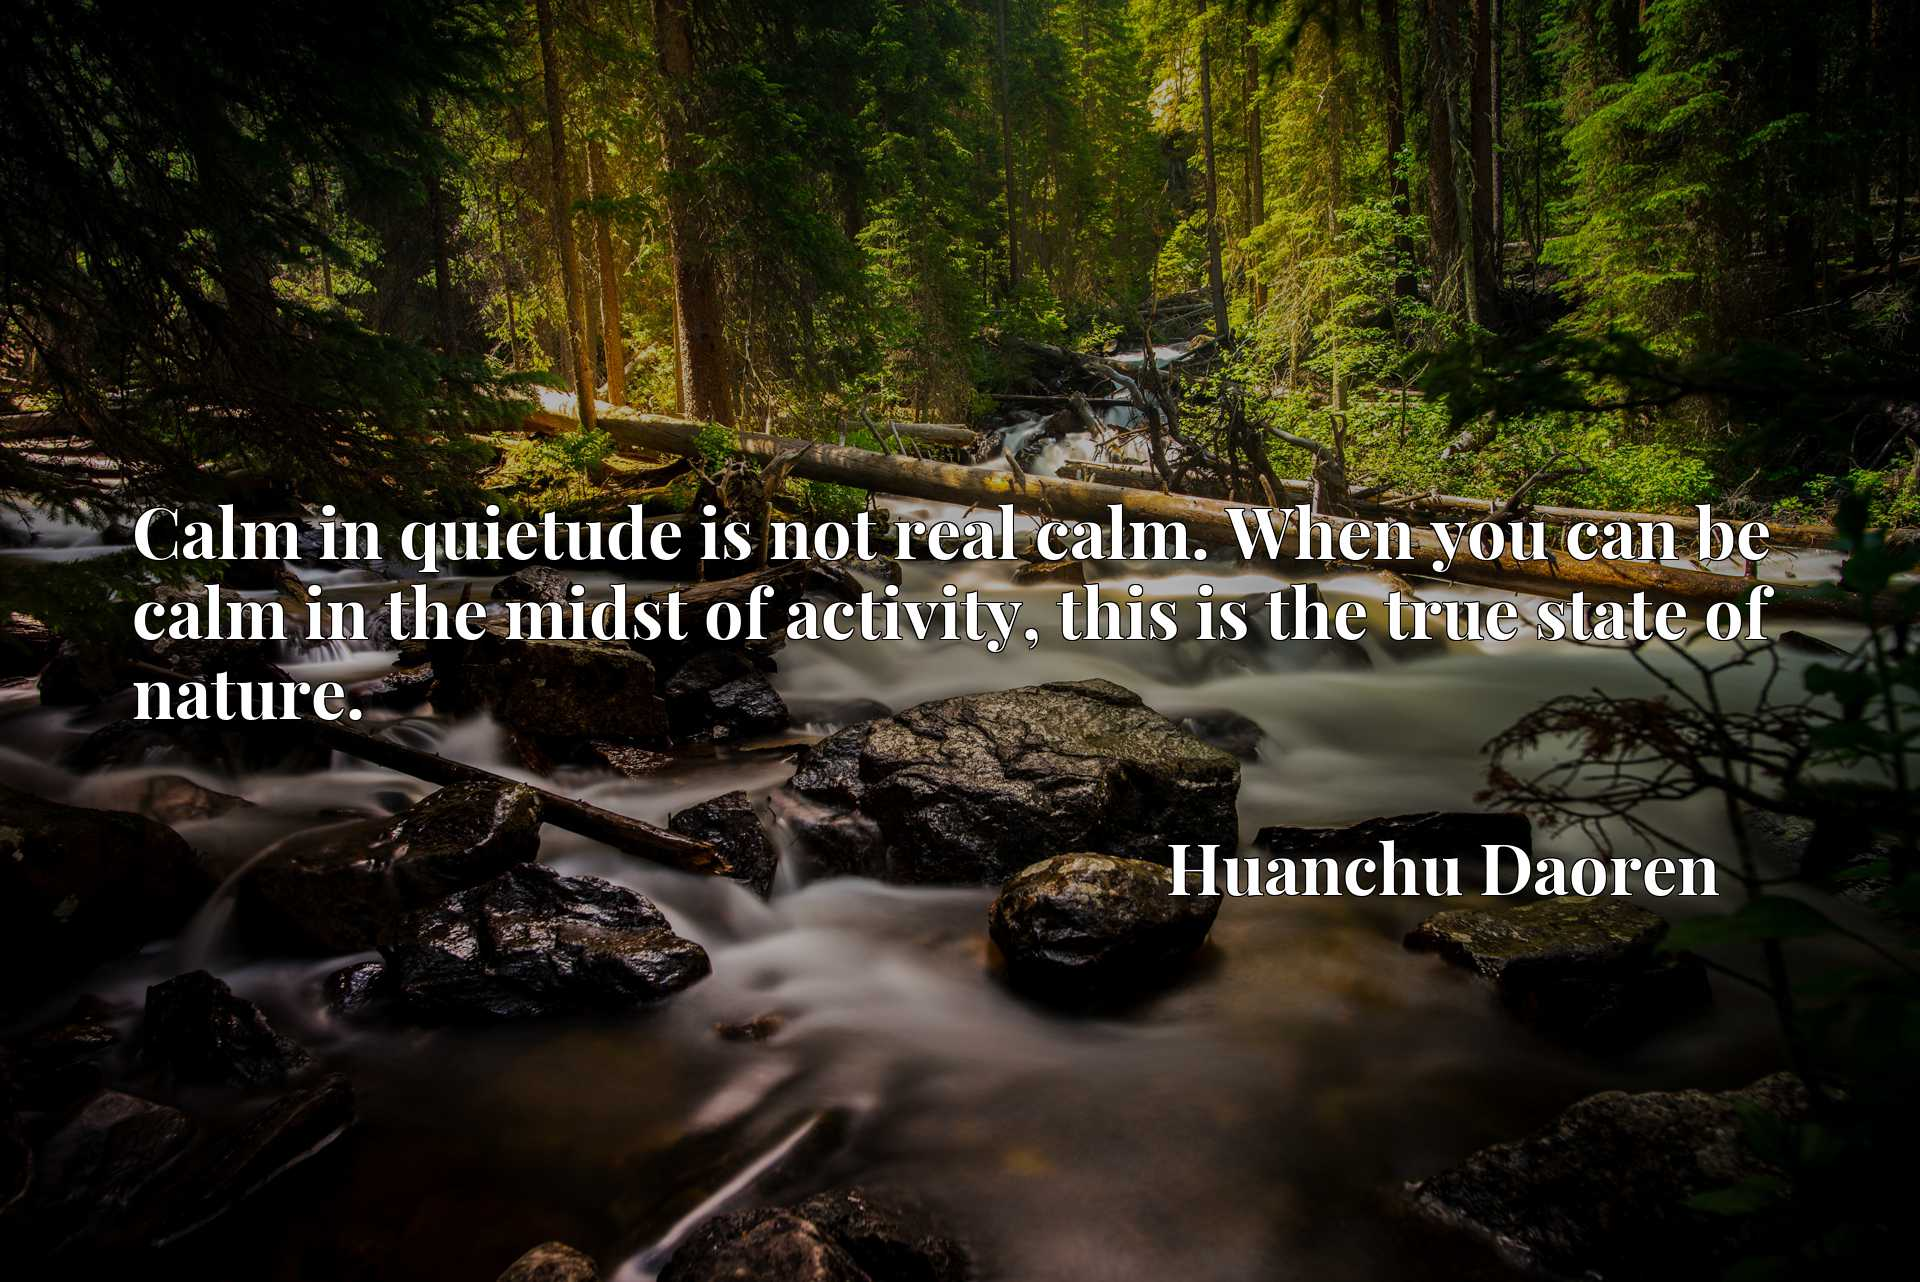 Calm in quietude is not real calm. When you can be calm in the midst of activity, this is the true state of nature.